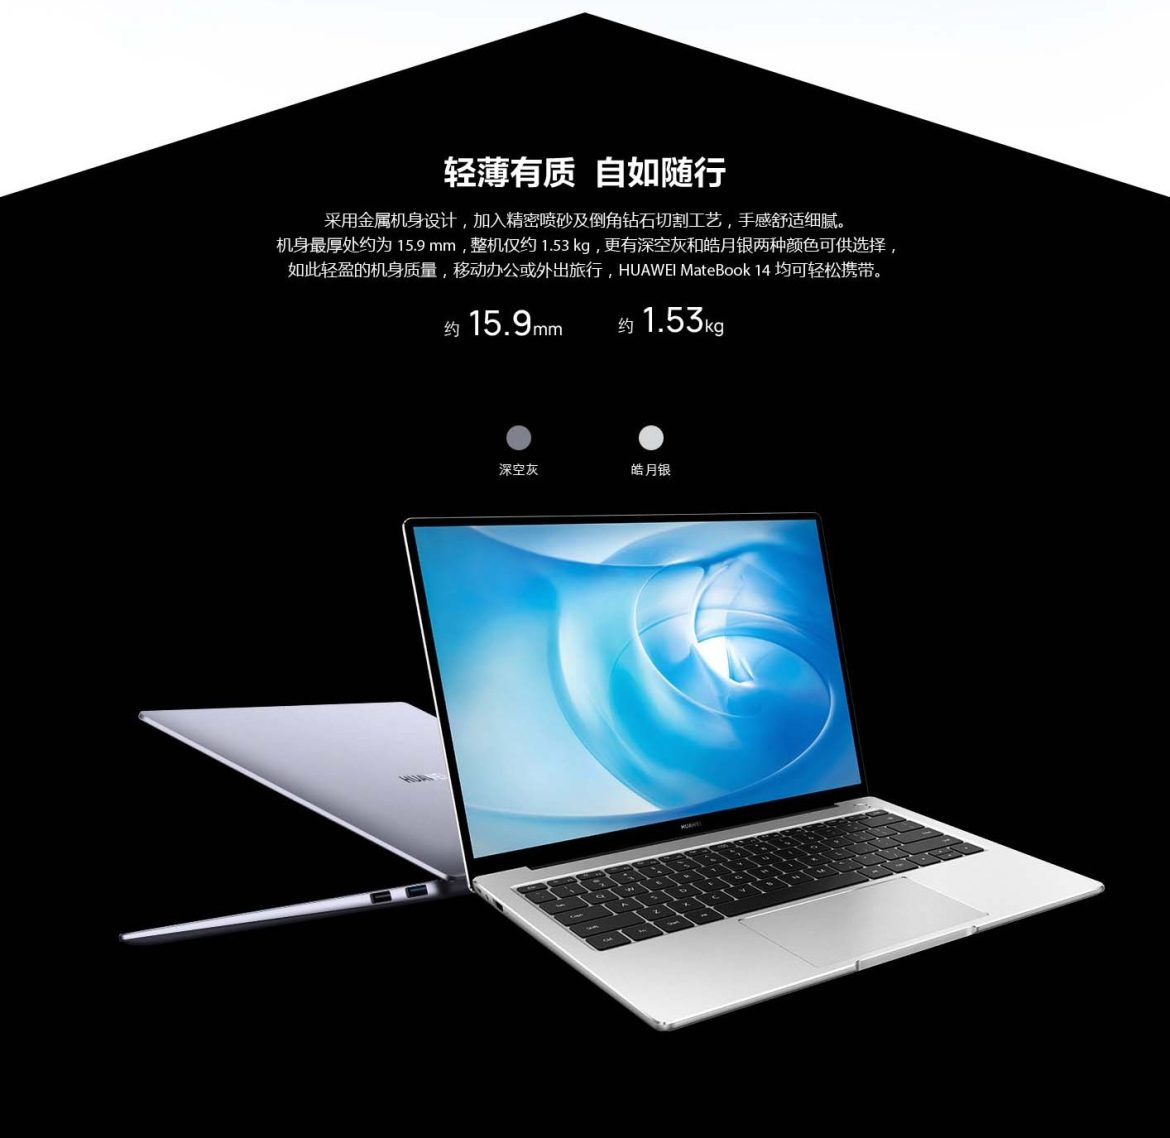 Huawei Linux Laptops Is Out Now : Full Specs